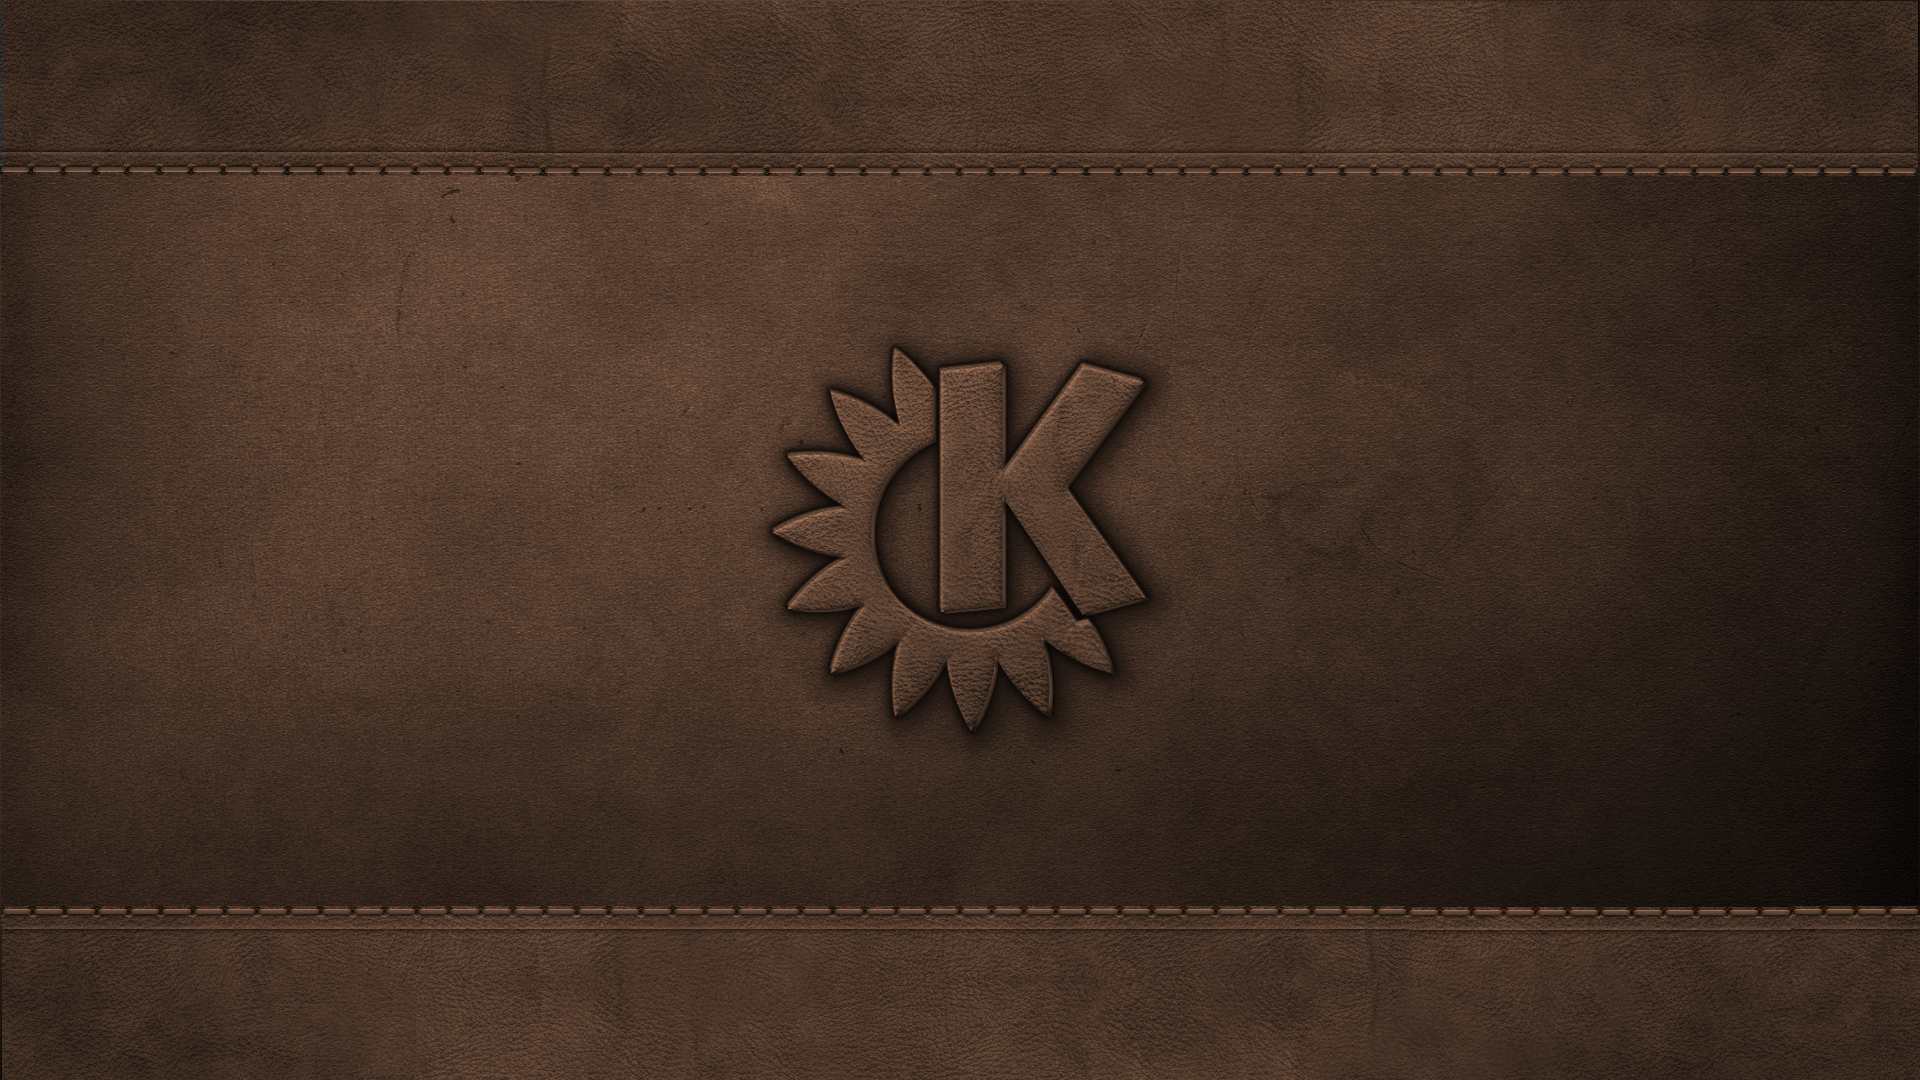 KDE on Leather Wallpaper by giancarlo64